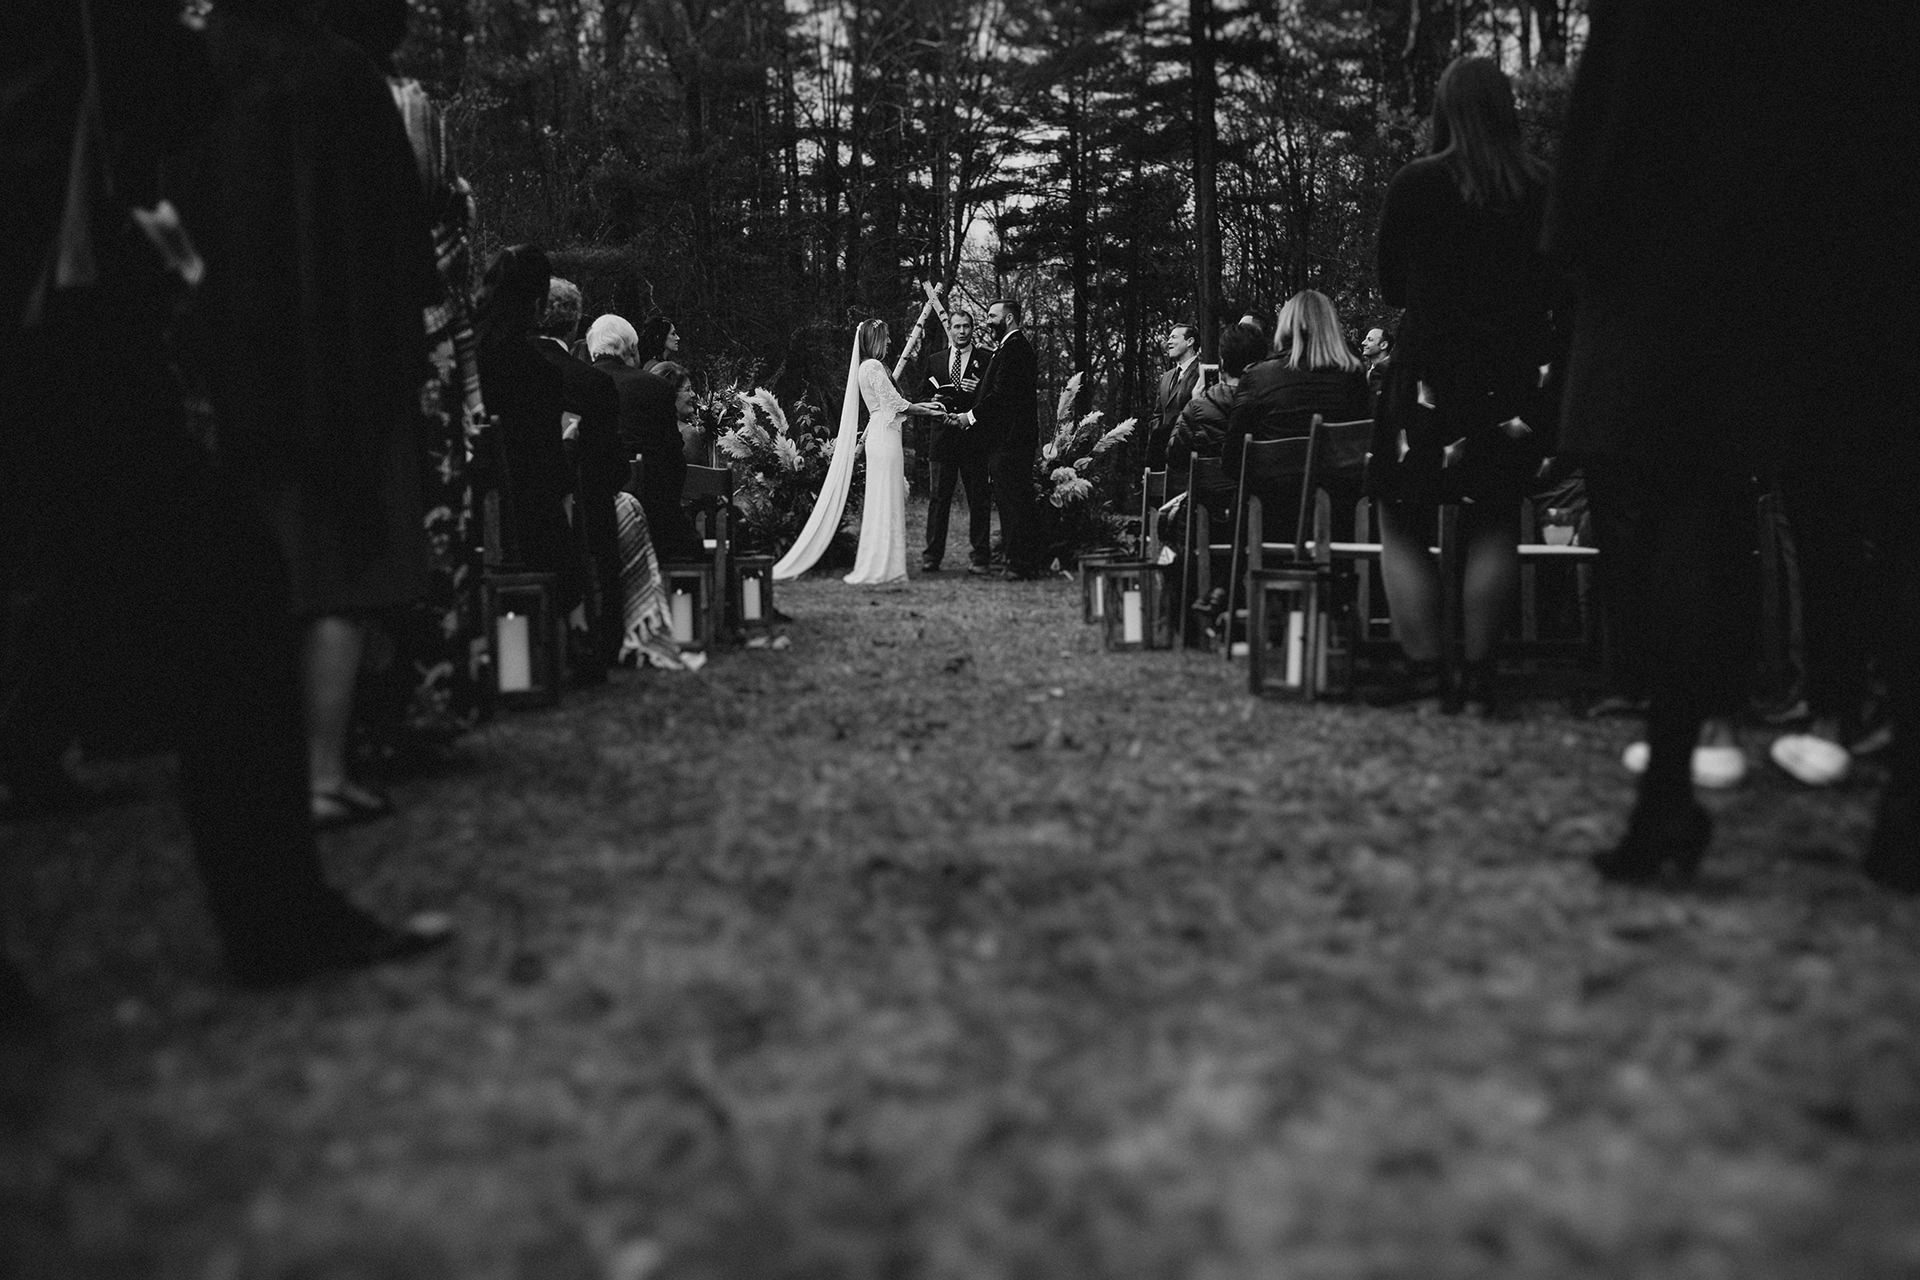 Weddind_catskills_mountain_newyjersey-182.jpg